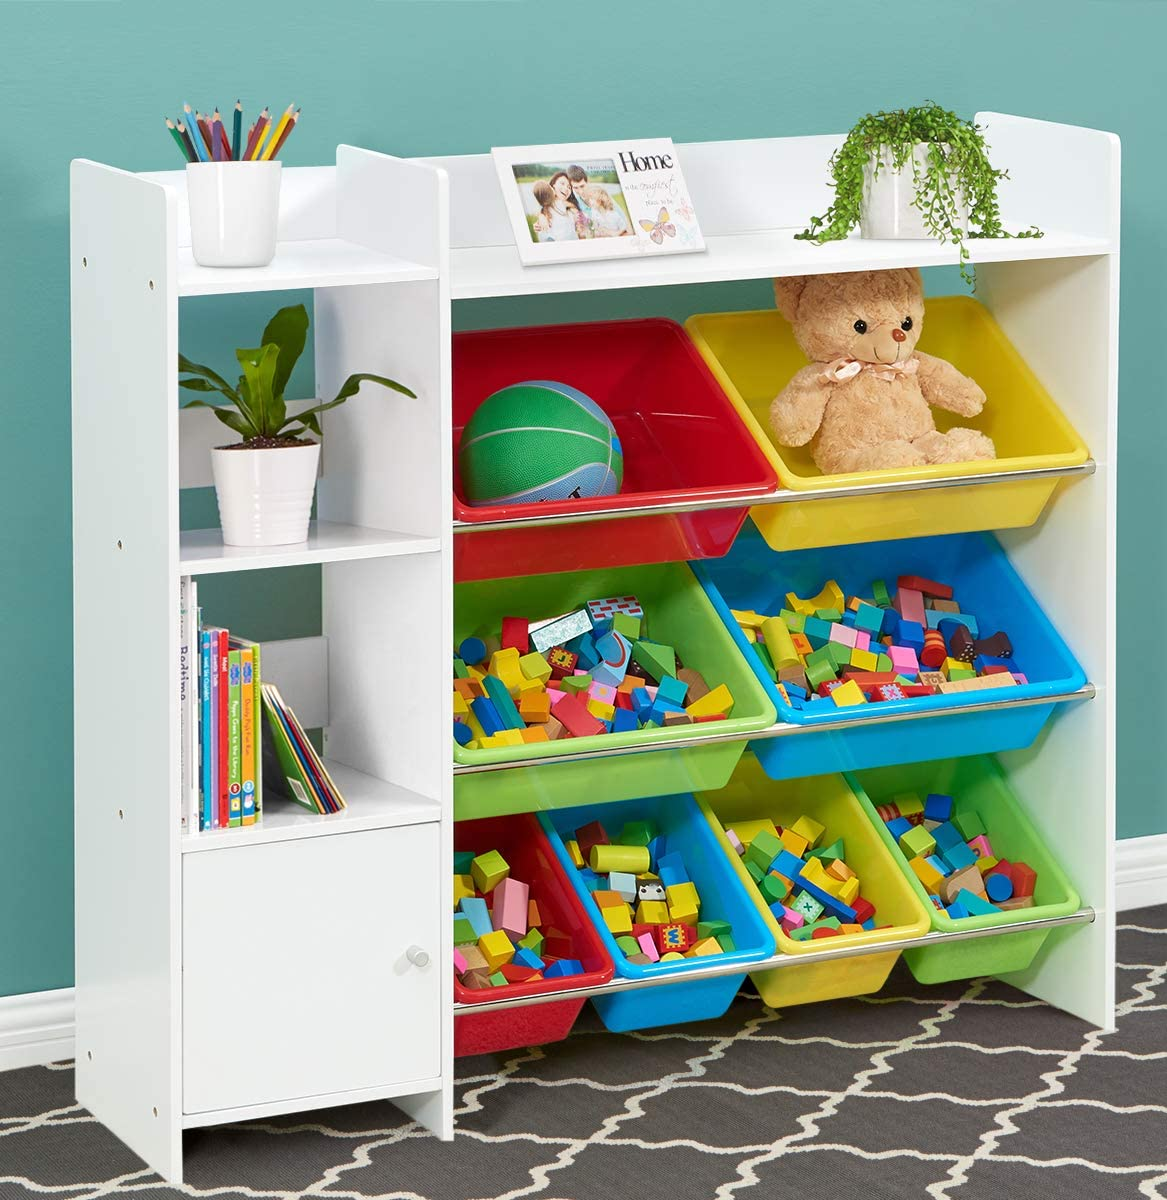 Sturdis Kids Toy Storage Organizer